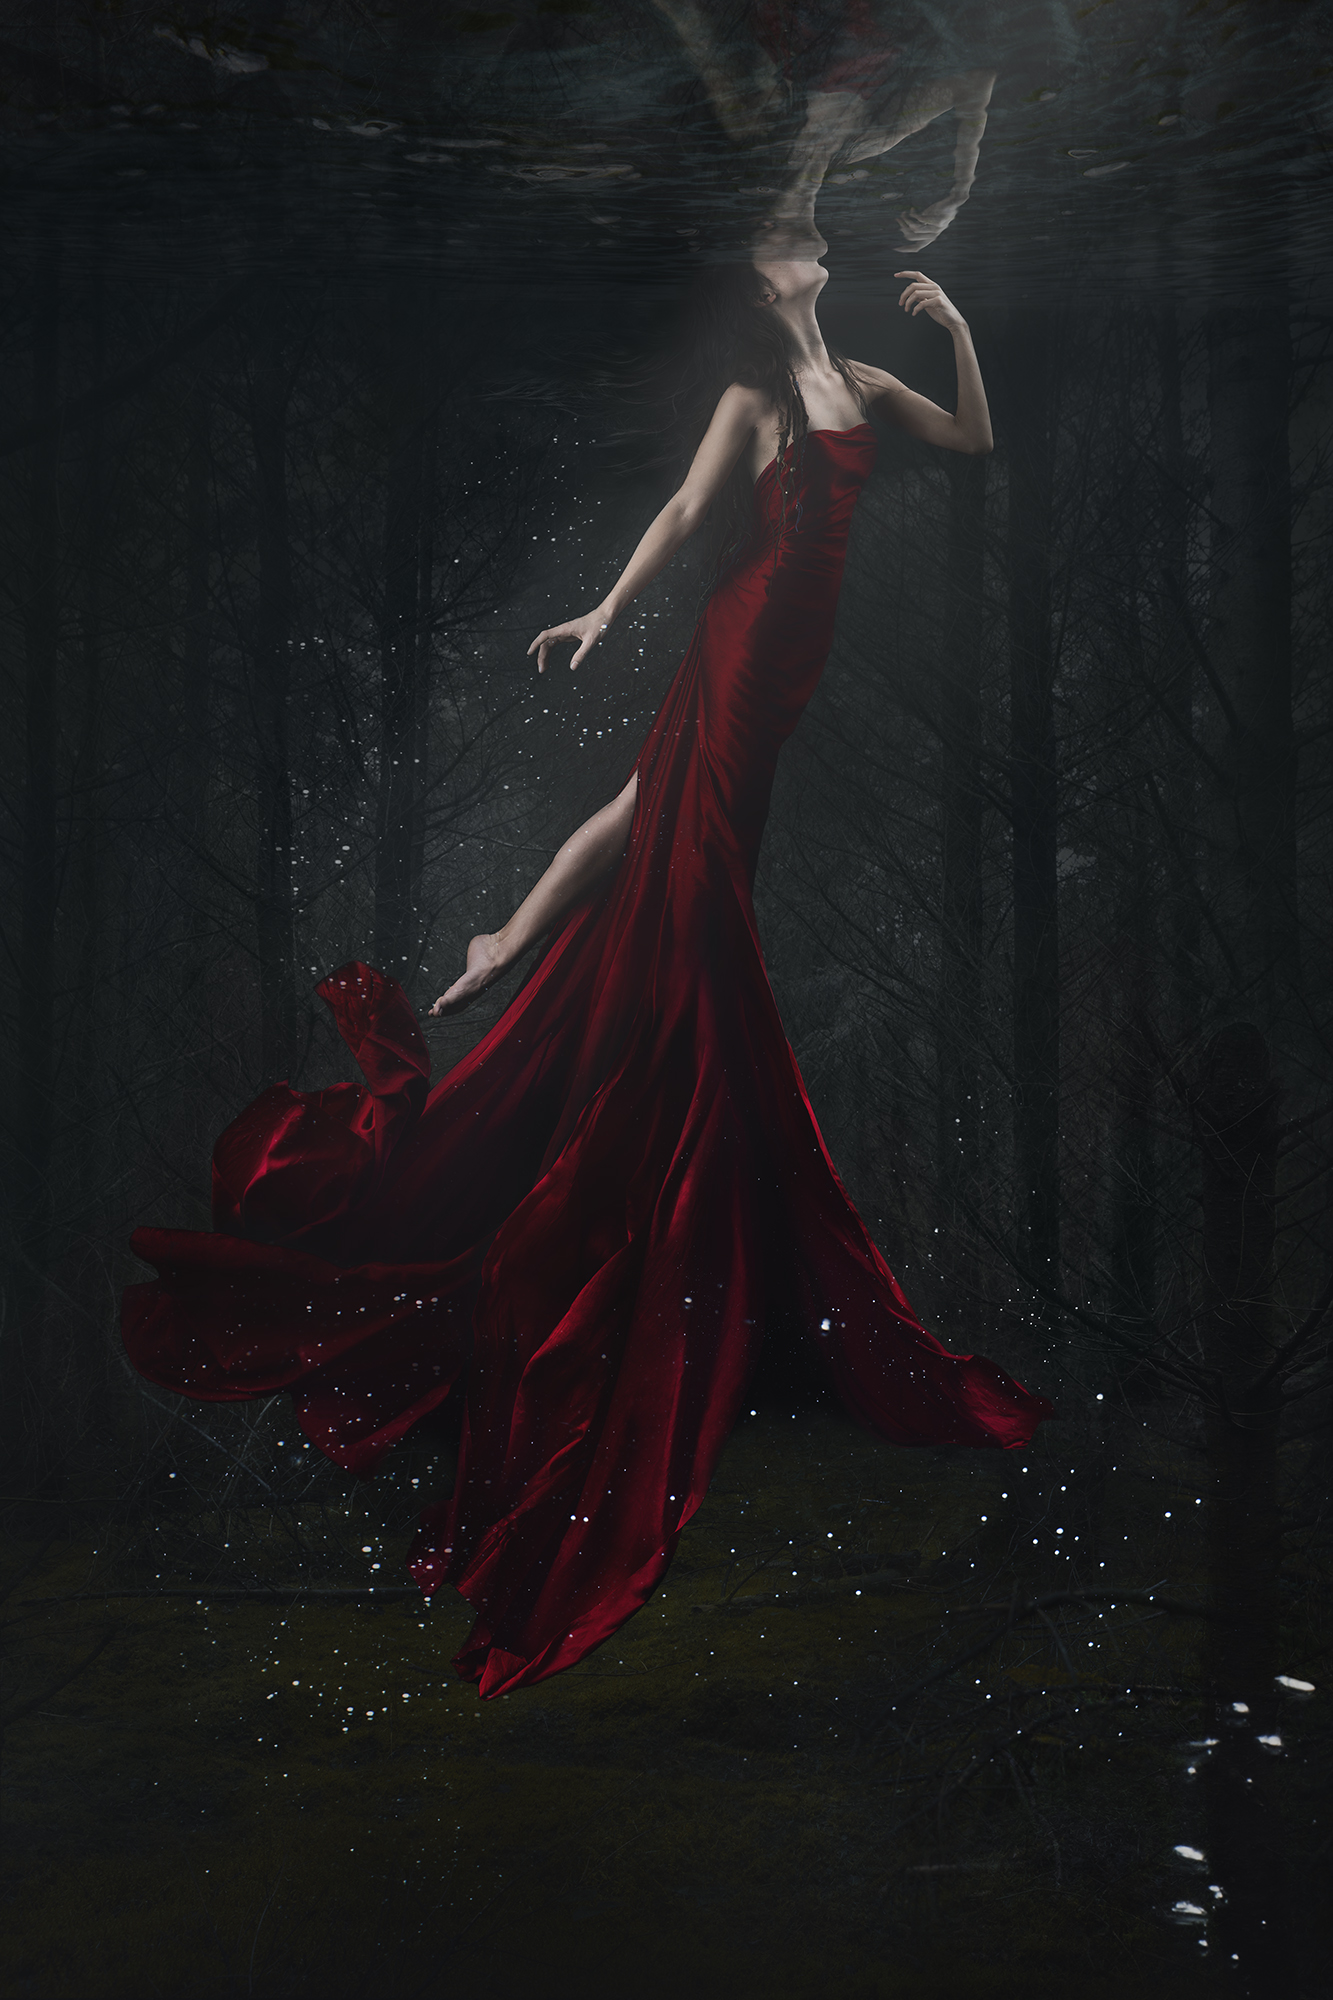 lisa_wittmann_photography_surrealism_underwater_mermaid_red_woman_dress_needle_forest